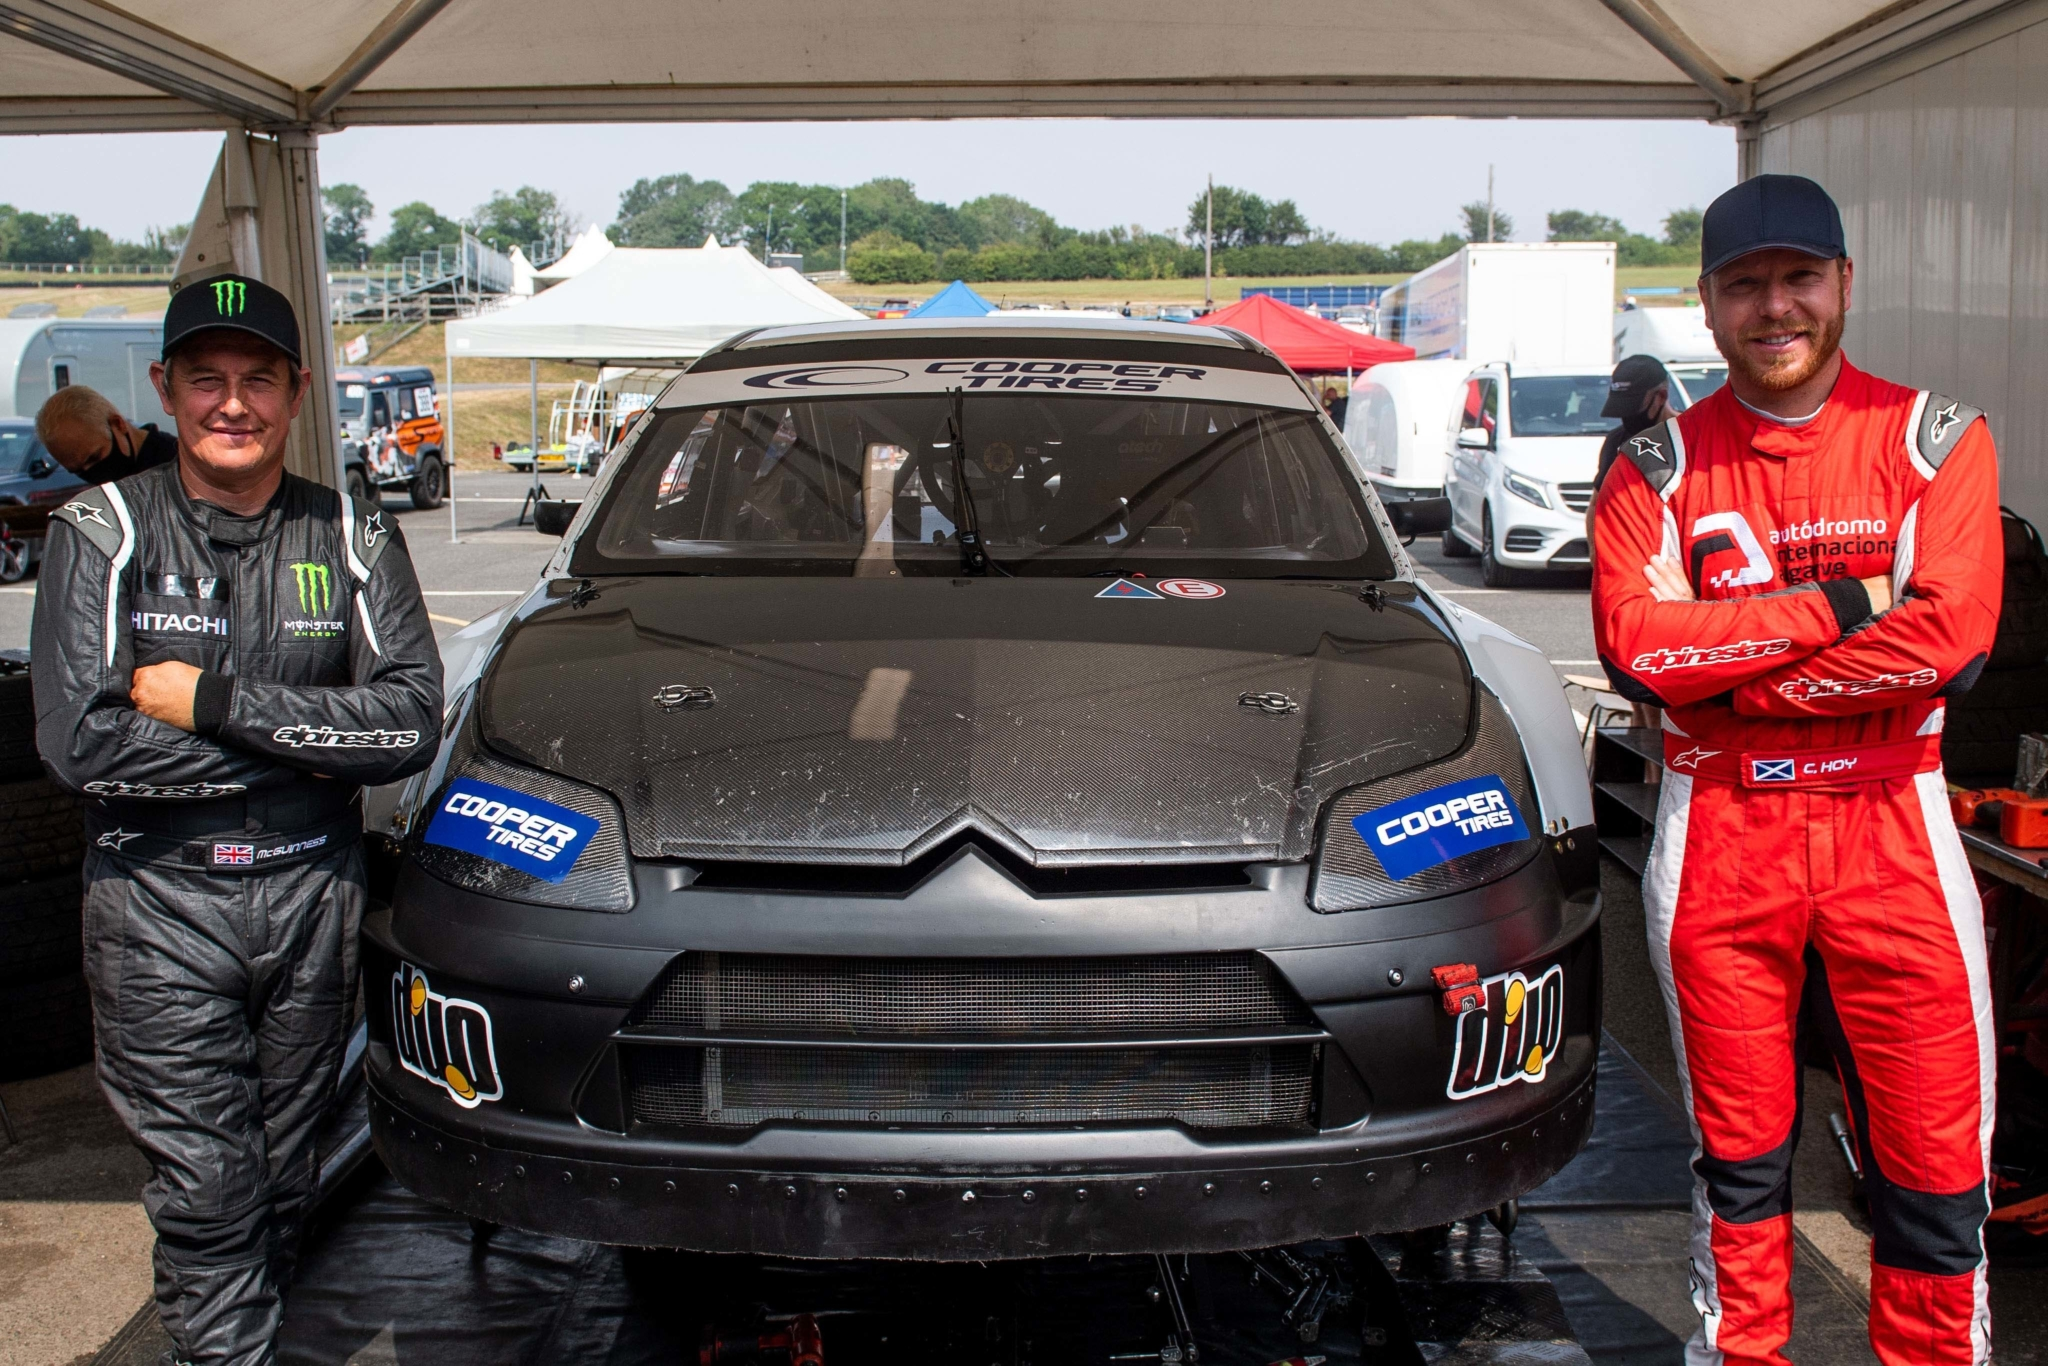 Cooper Tires supported British Rallycross Championship 2020 launched